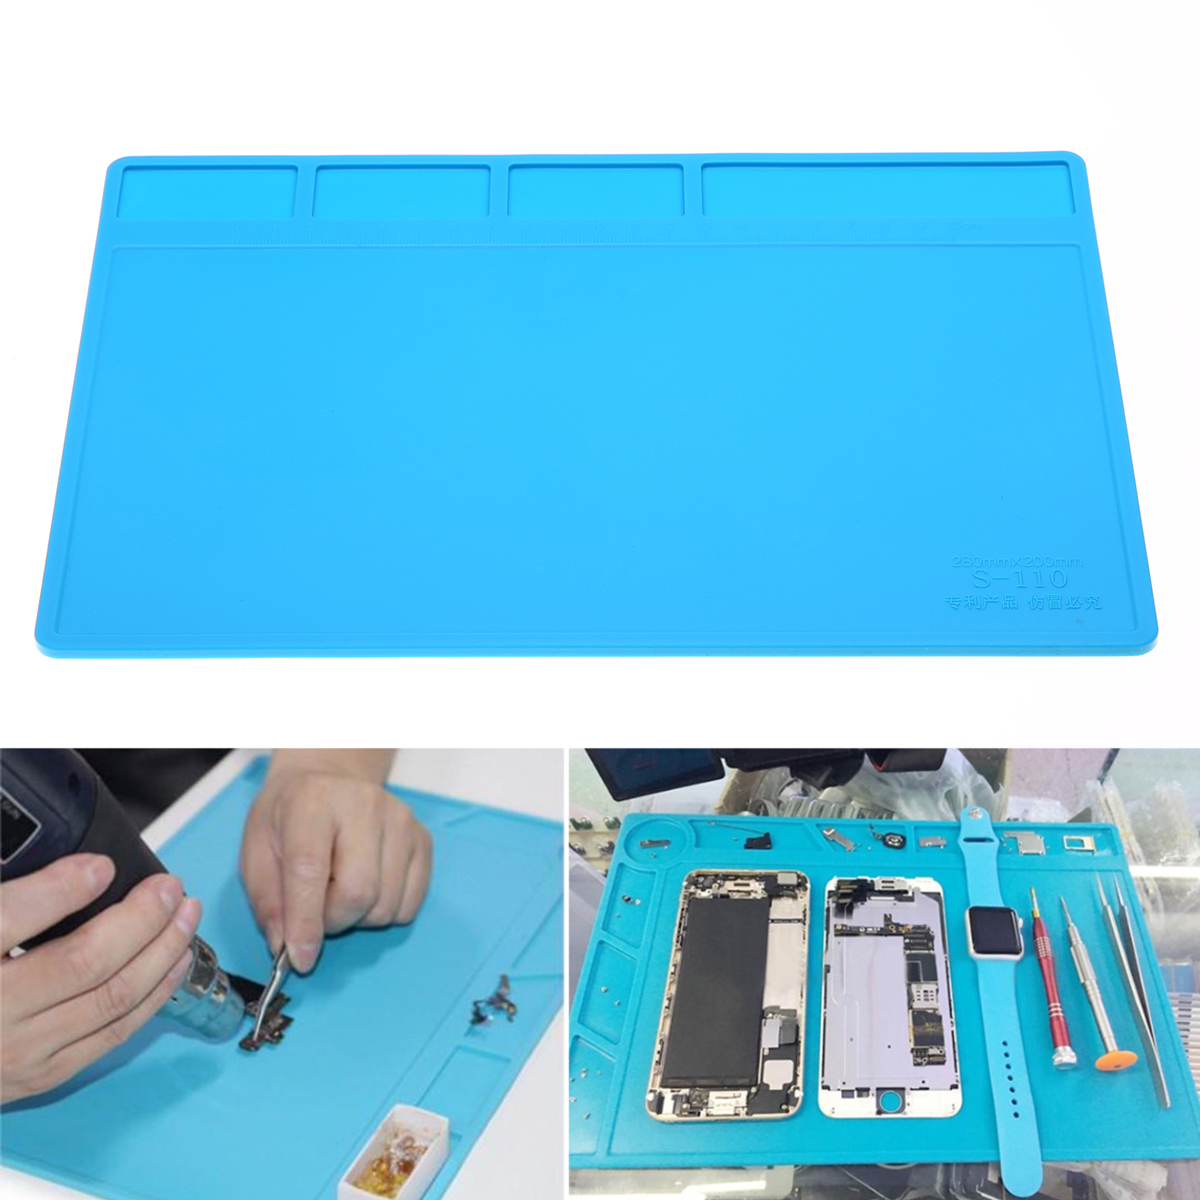 1pcs New Soldering Station Repair Desk Maintenance Platform Heat Insulation Silicone Working Pad Mat